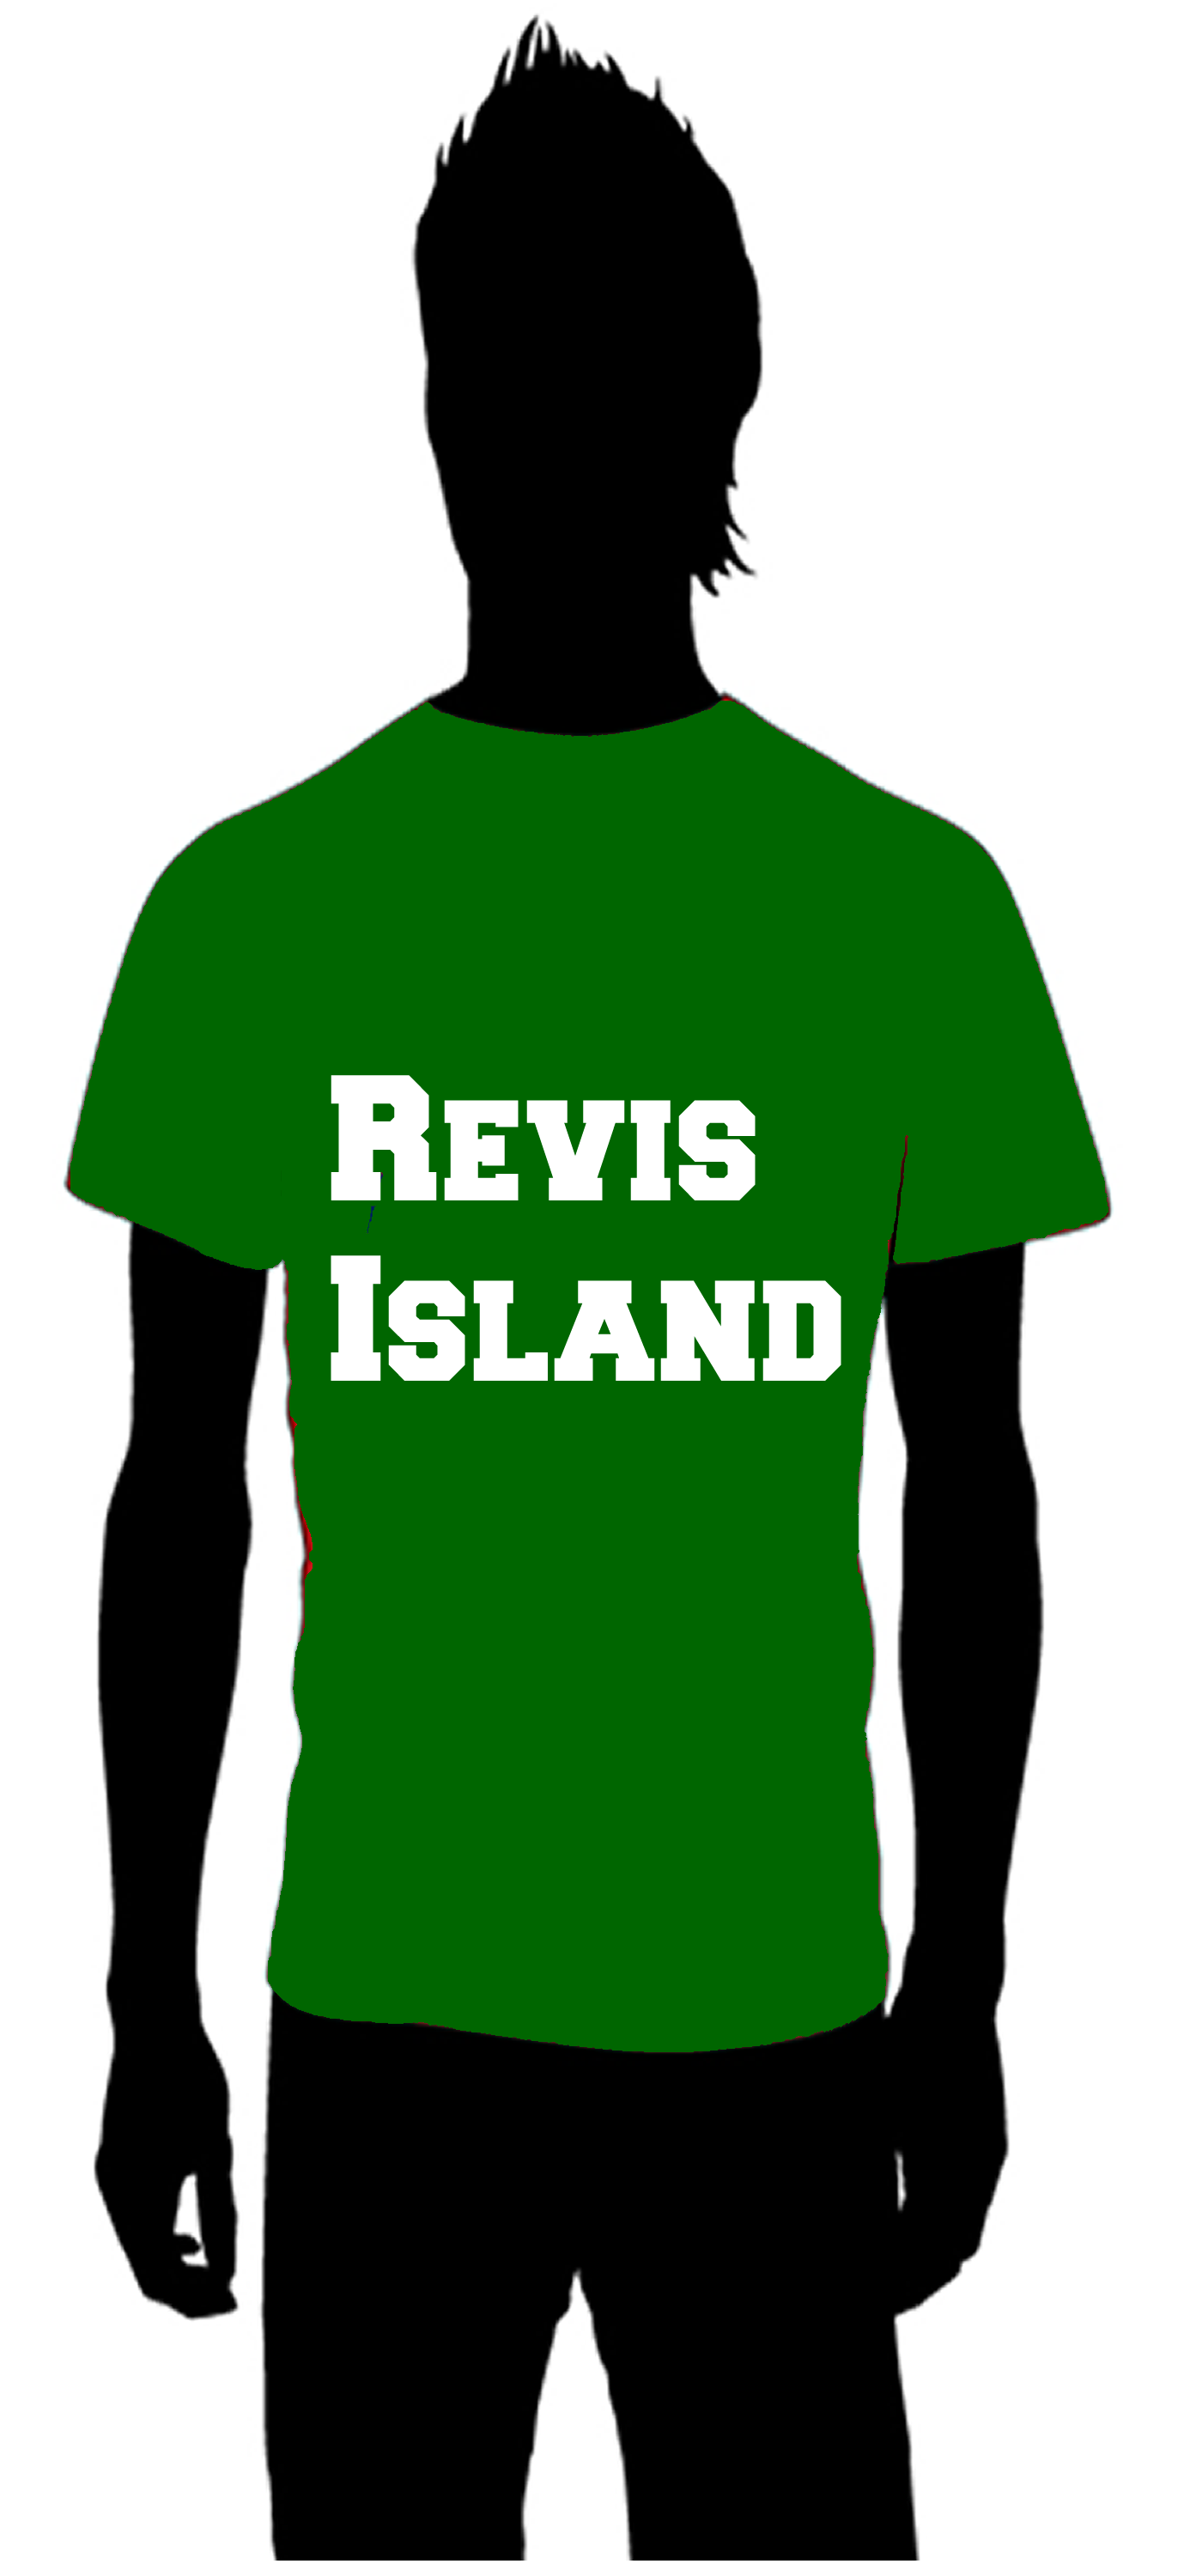 Revis Island  Darrelle Revis  The New York Jets    for information on how to order email thoseplayertees@gmail.com